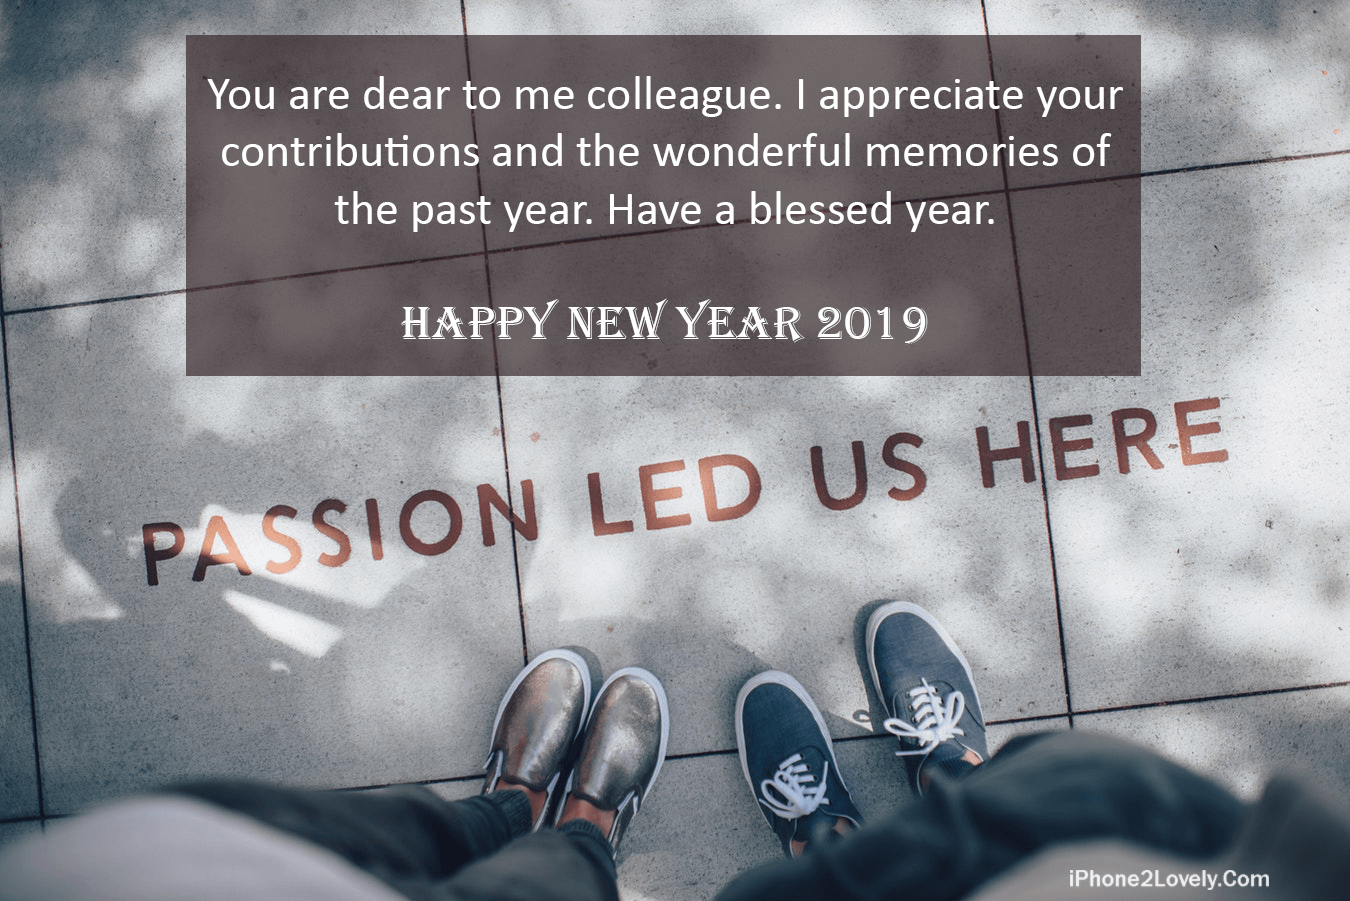 happy new year 2019 messages and greeting for colleagues